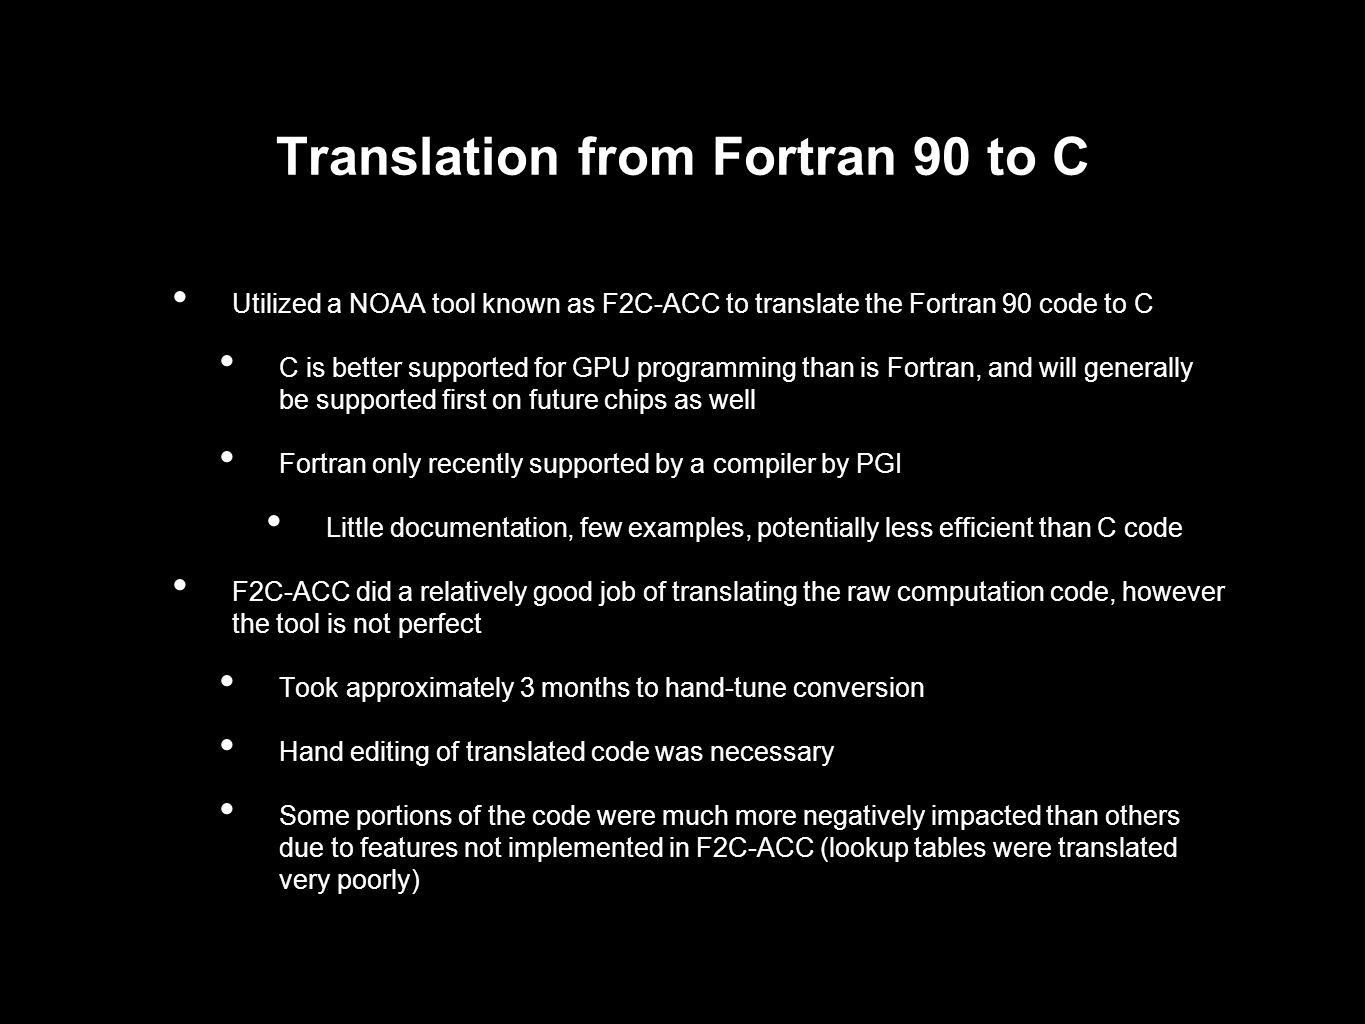 Translation from Fortran 90 to C Utilized a NOAA tool known as F2C-ACC to translate the Fortran 90 code to C C is better supported for GPU programming than is Fortran, and will generally be supported first on future chips as well Fortran only recently supported by a compiler by PGI Little documentation, few examples, potentially less efficient than C code F2C-ACC did a relatively good job of translating the raw computation code, however the tool is not perfect Took approximately 3 months to hand-tune conversion Hand editing of translated code was necessary Some portions of the code were much more negatively impacted than others due to features not implemented in F2C-ACC (lookup tables were translated very poorly)